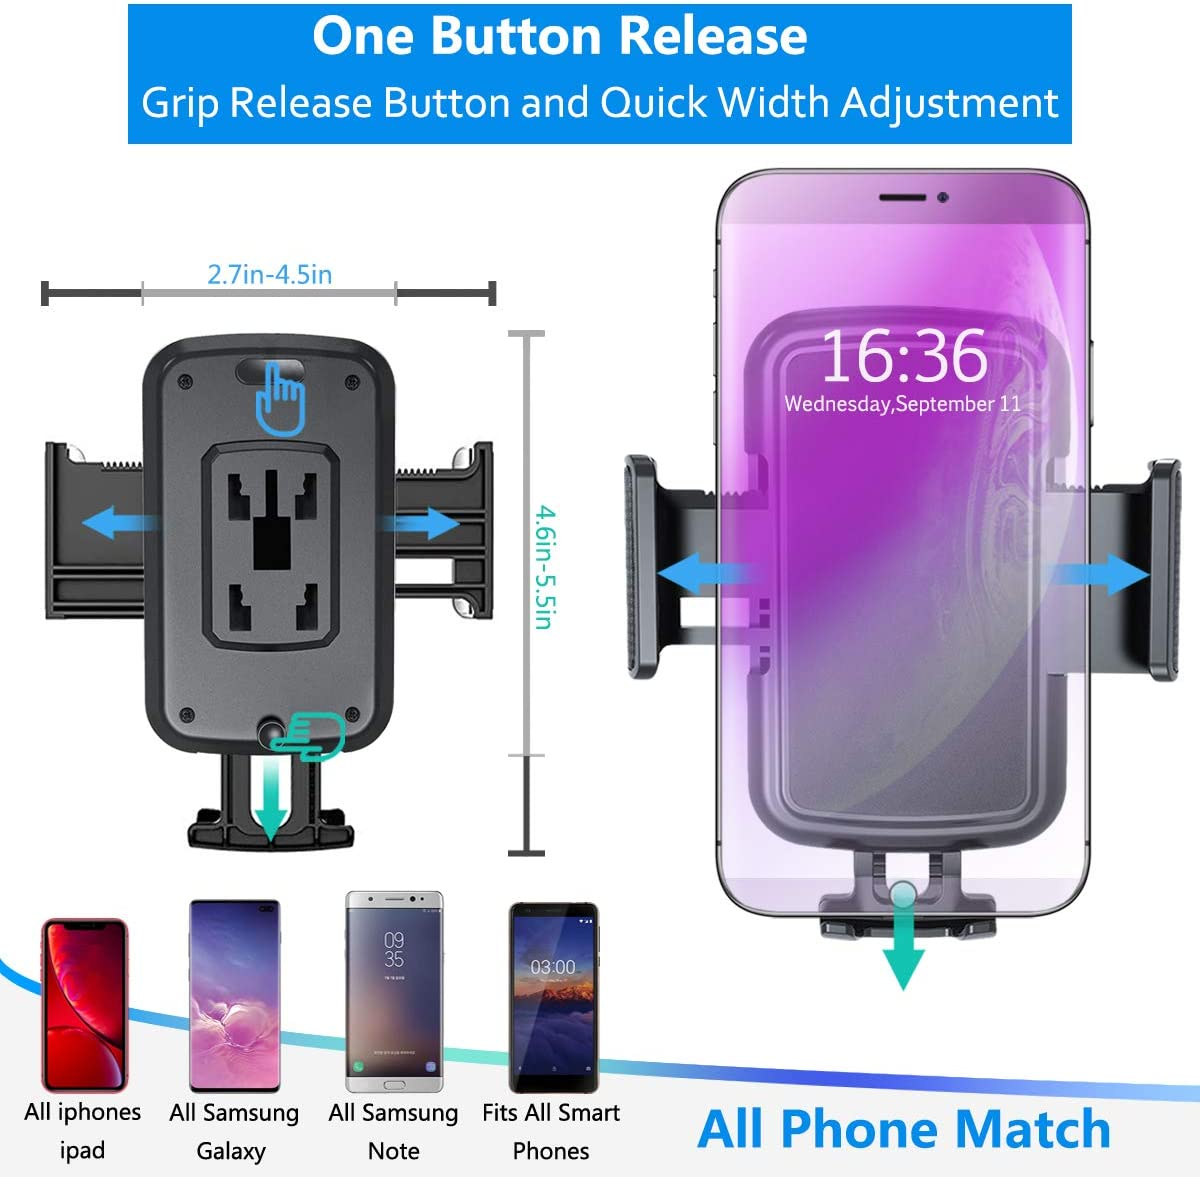 Mikikin Cell Phone Holder Universal Adjustable Cup Holder Cradle Car Mount with Flexible Long Neck for iPhone 11 Pro//XR//XS Max//X//8//7 Plus//Samsung S10+//Note 9//S8 Plus//S7 Edg Car Cup Holder Phone Mount